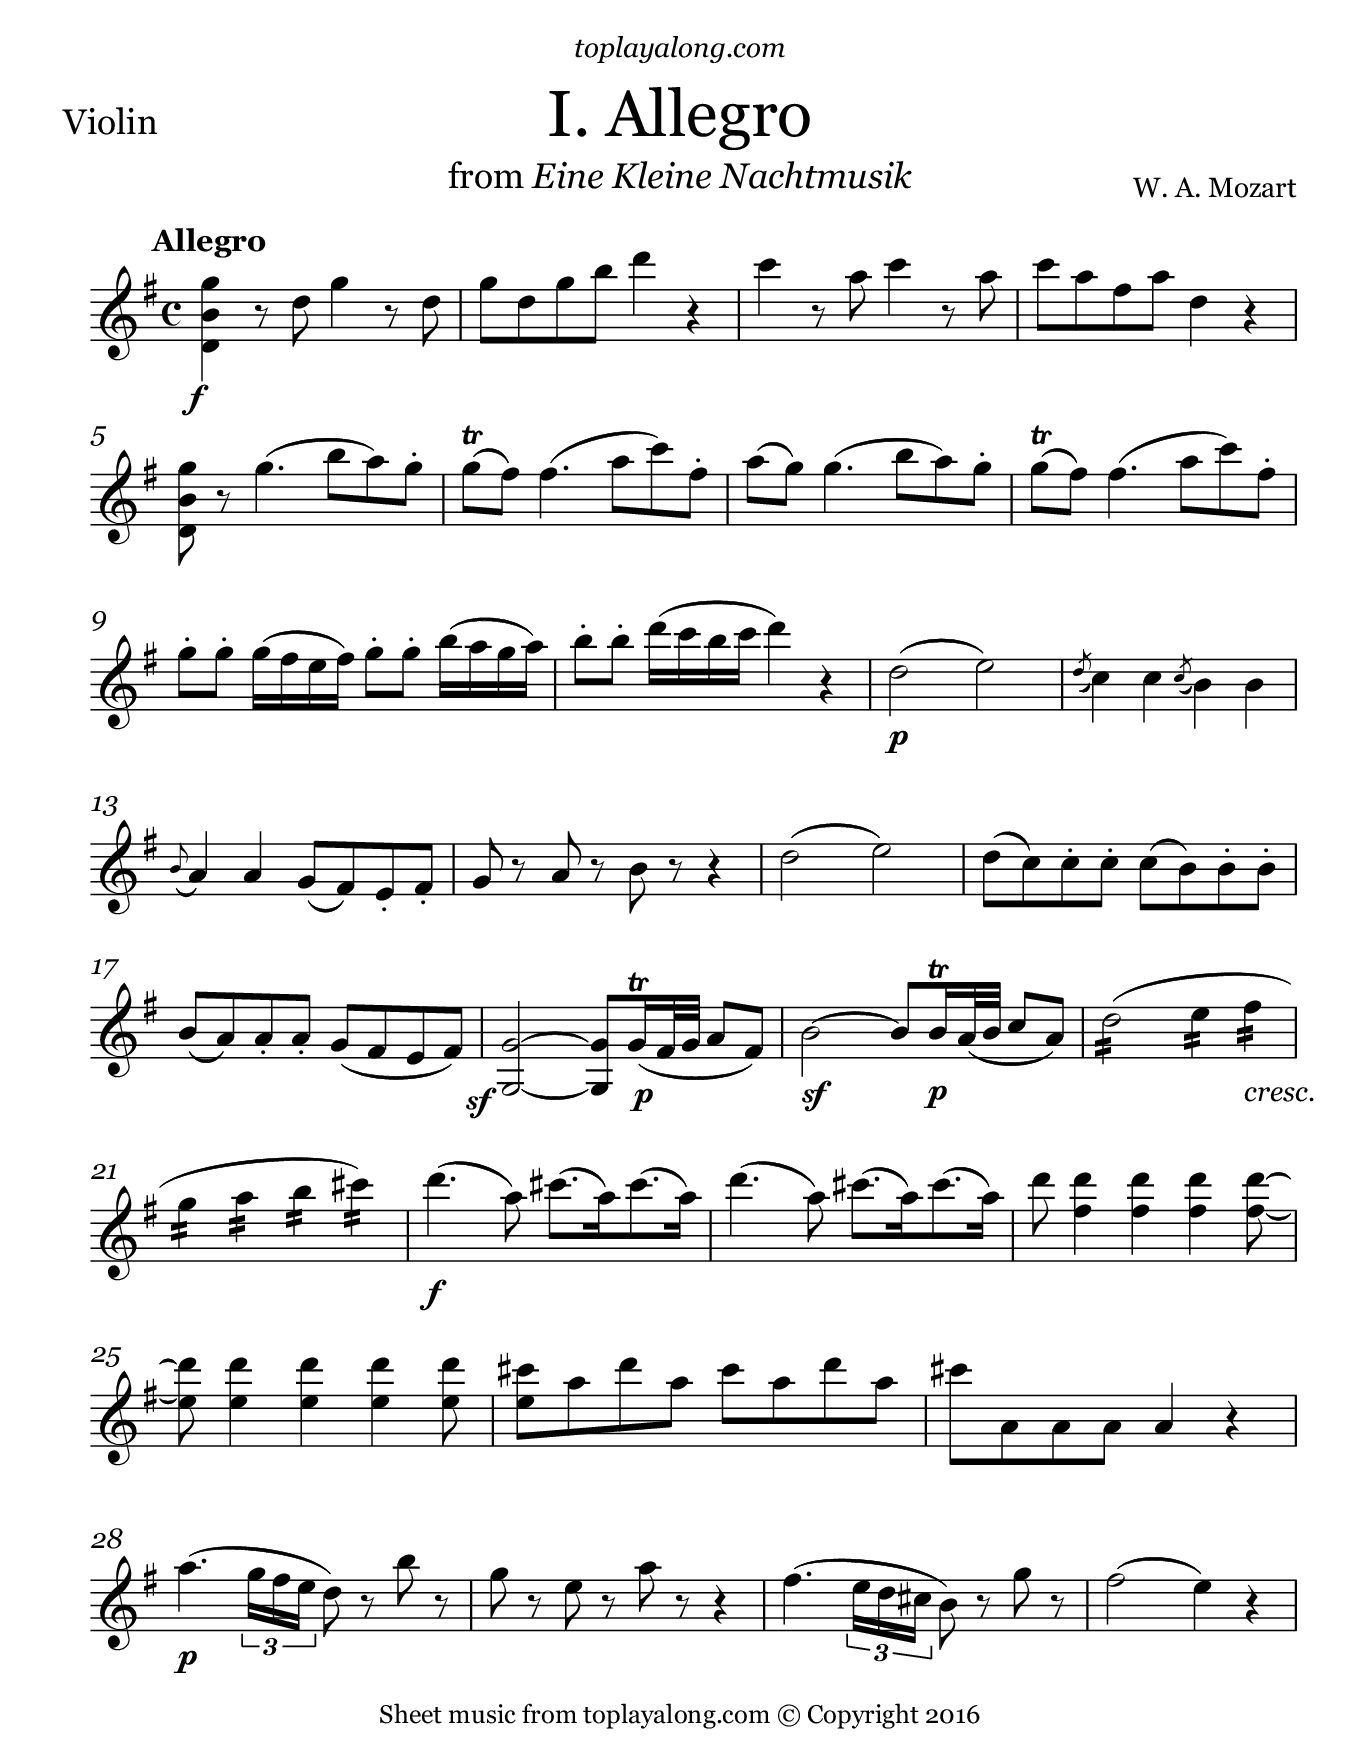 Eine Kleine Nachtmusik (I. Allegro) by Mozart. Sheet music for Violin, page 1.